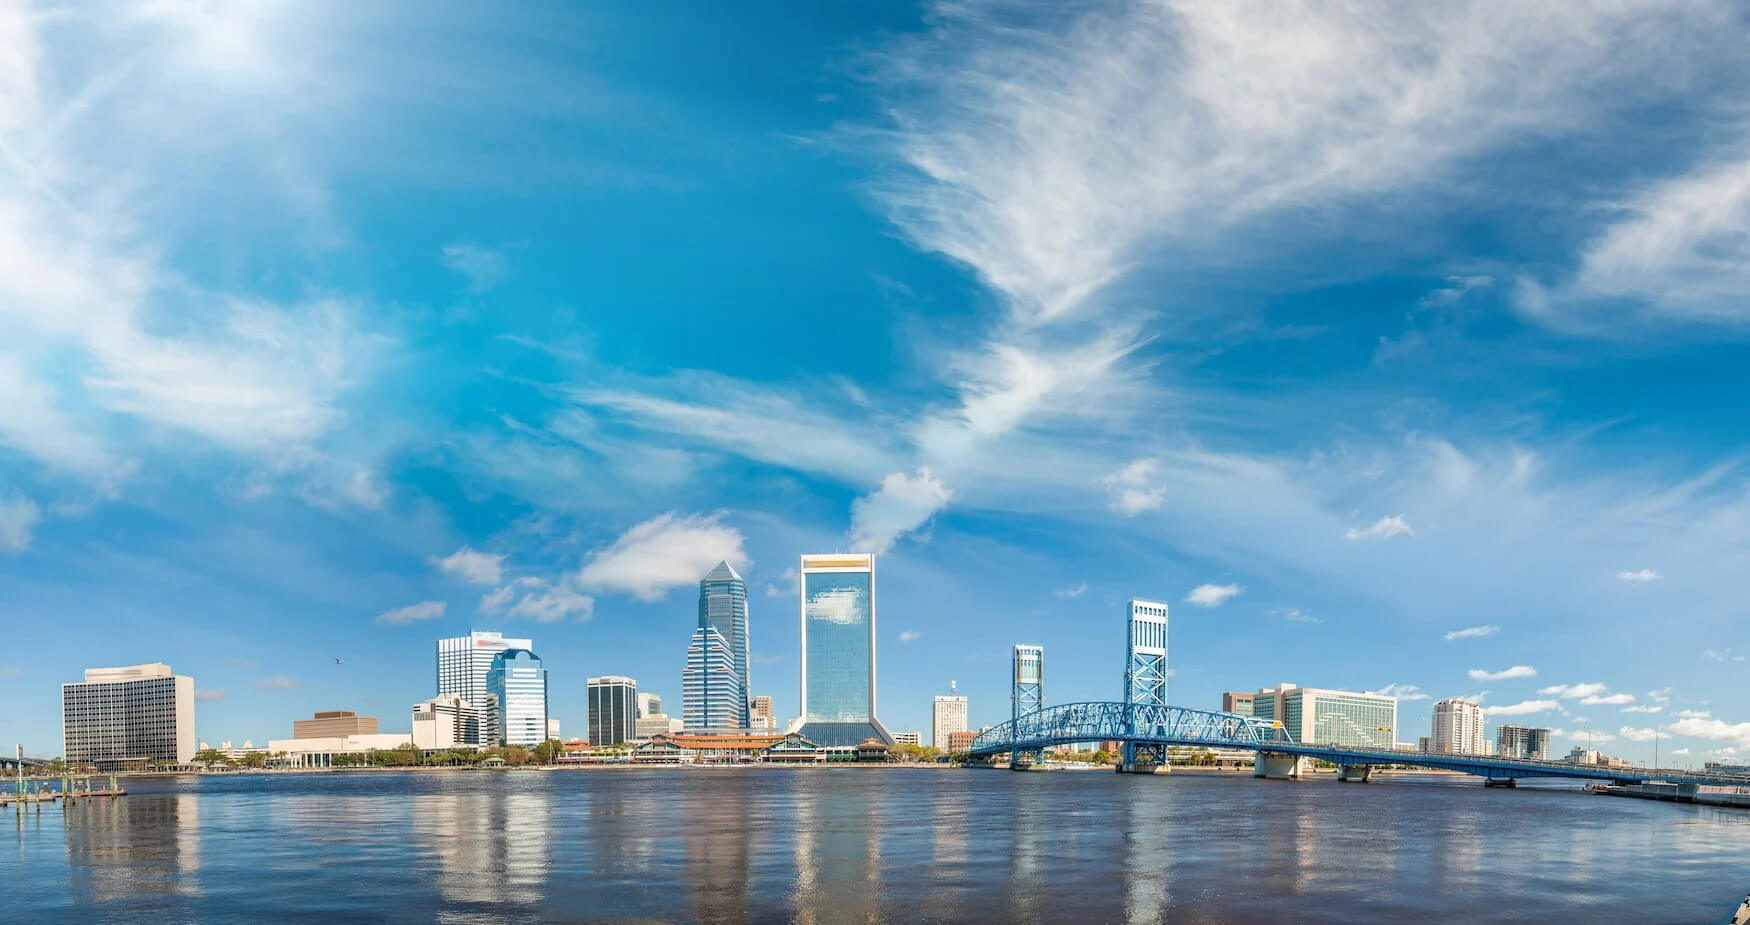 Jacksonvile Florida skyline and blue sky rx buildings copy